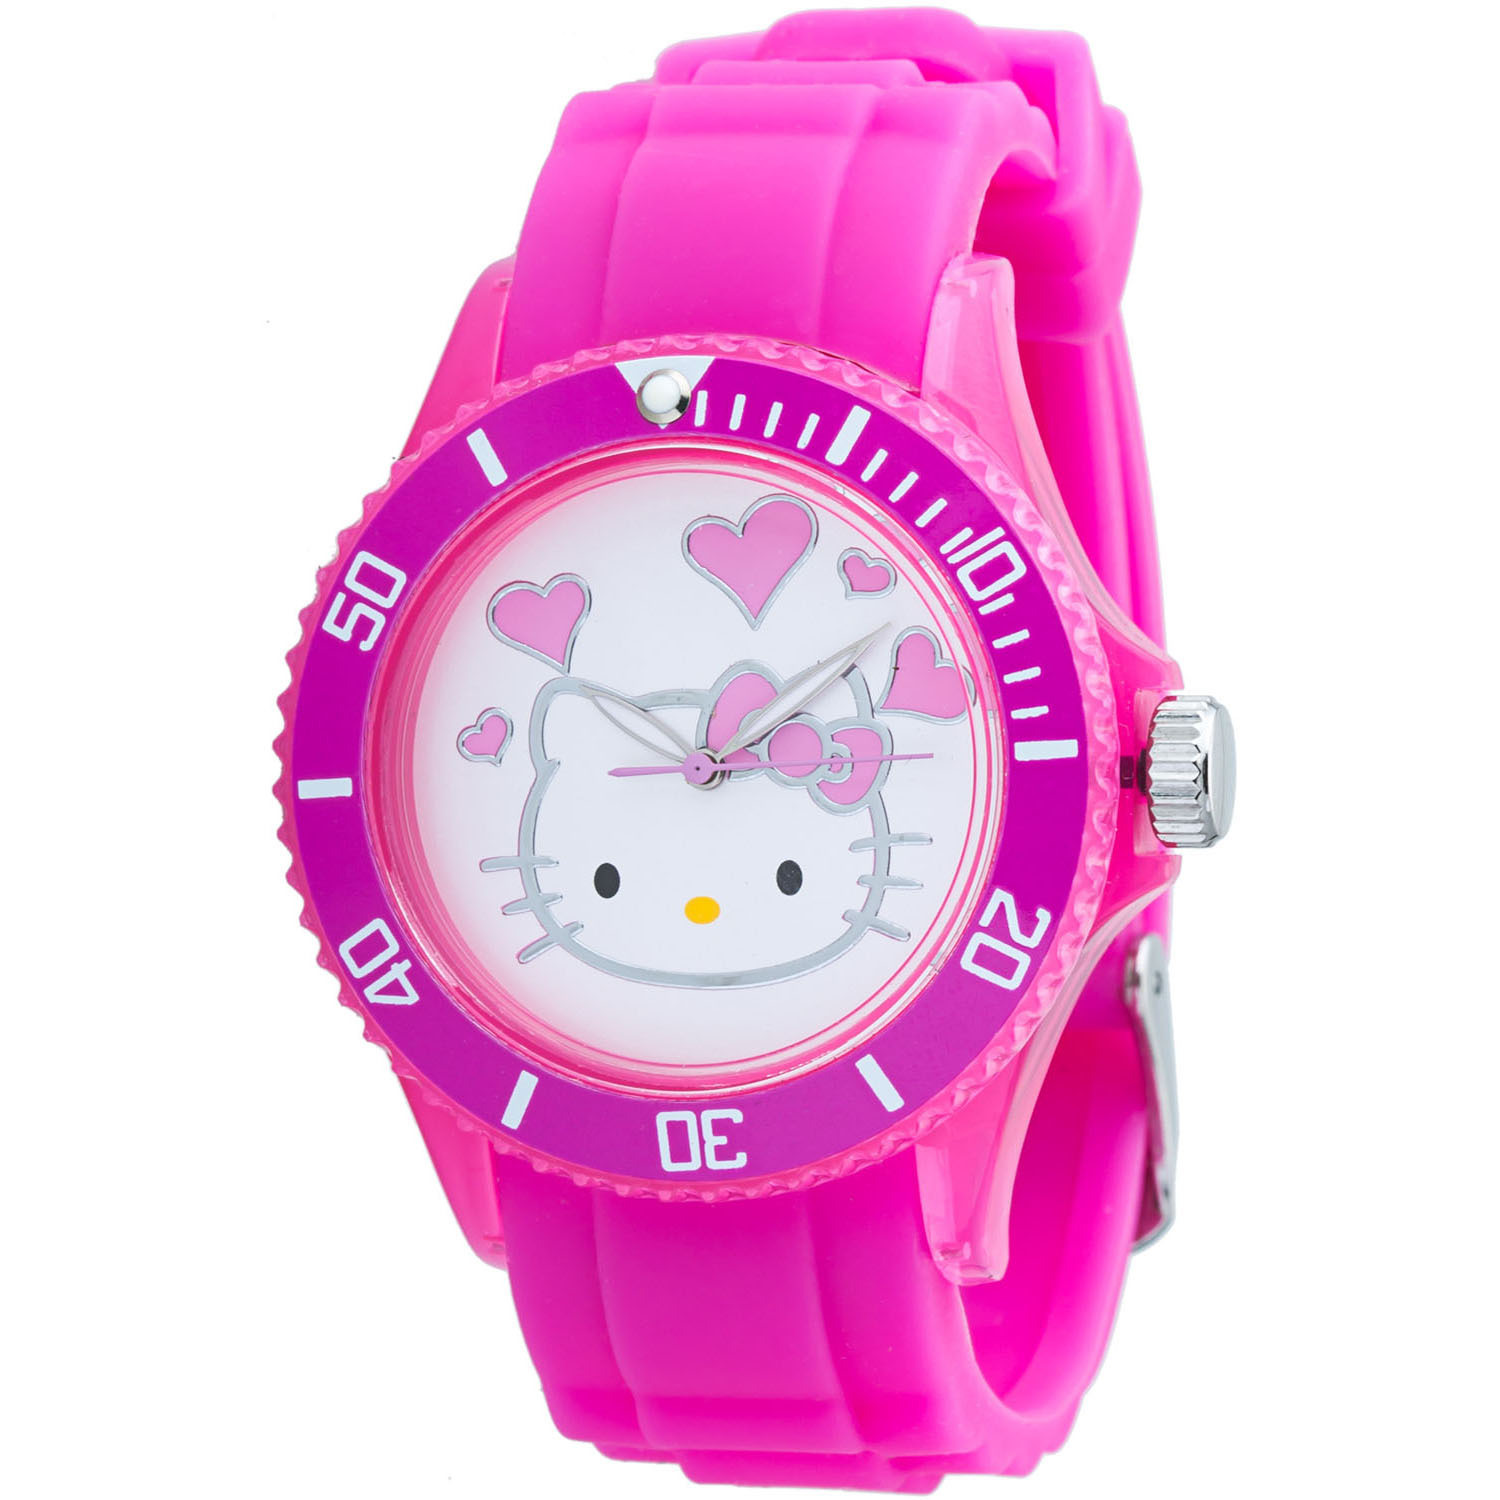 8f3925ce9 Hello Kitty Women's Pink Plastic Quartz Watch - Jewelry Outlet